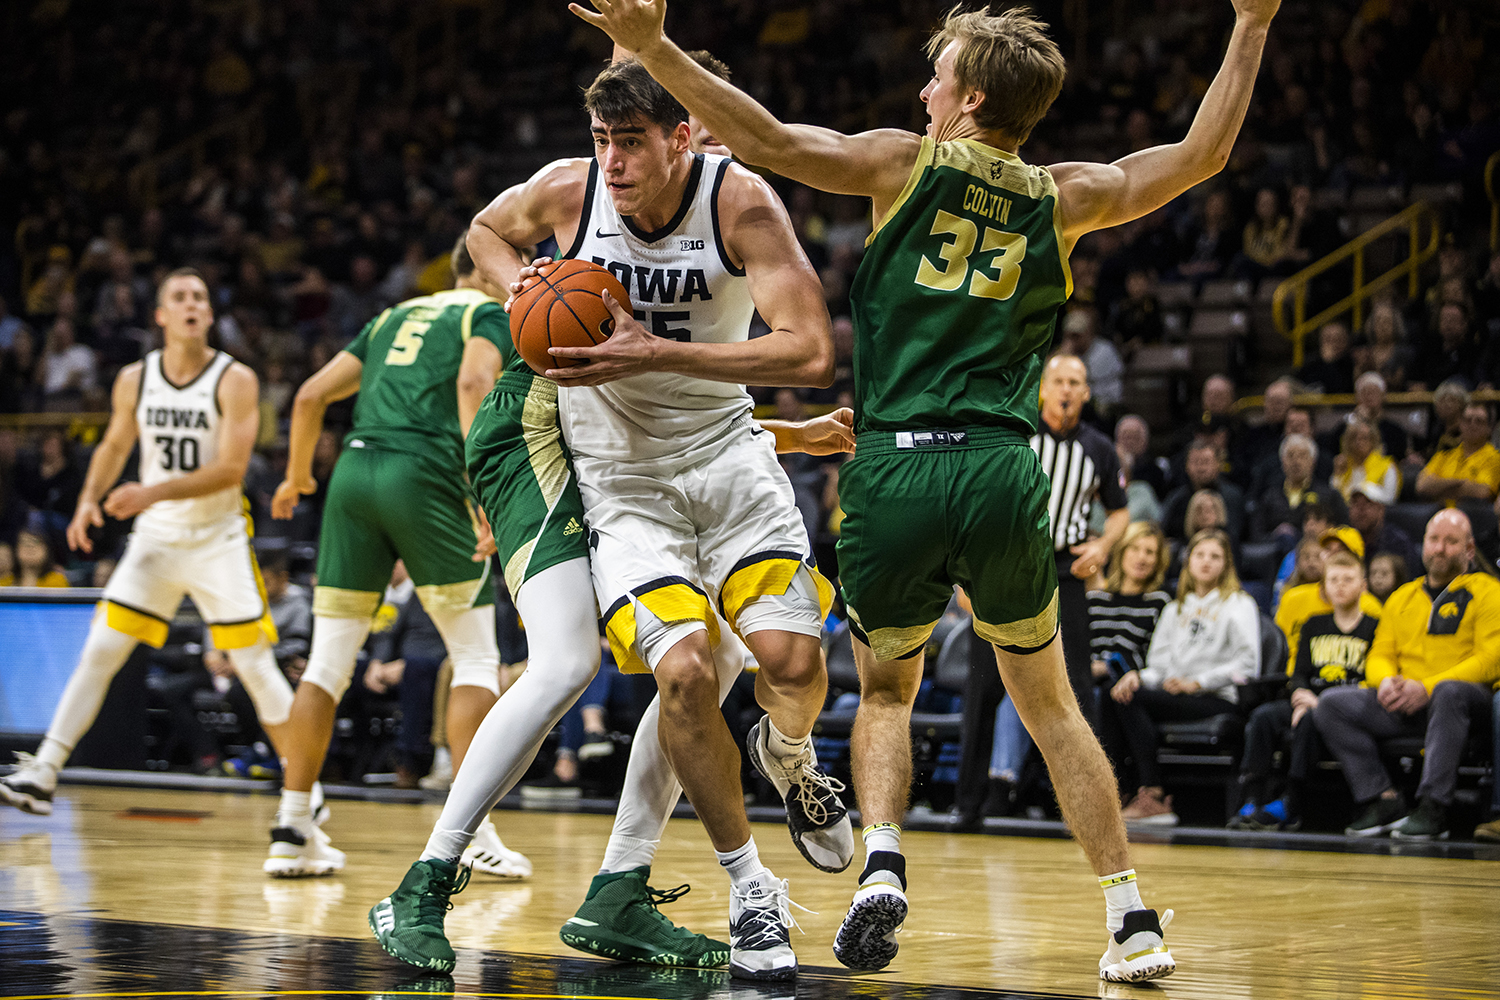 Iowa center Luka Garza drives the ball during the men's basketball game against Cal Poly at Carver-Hawkeye Arena on Sunday, November 24, 2019. The Hawkeyes defeated the Mustangs 85-59. Garza made 8 of his 13 baskets.